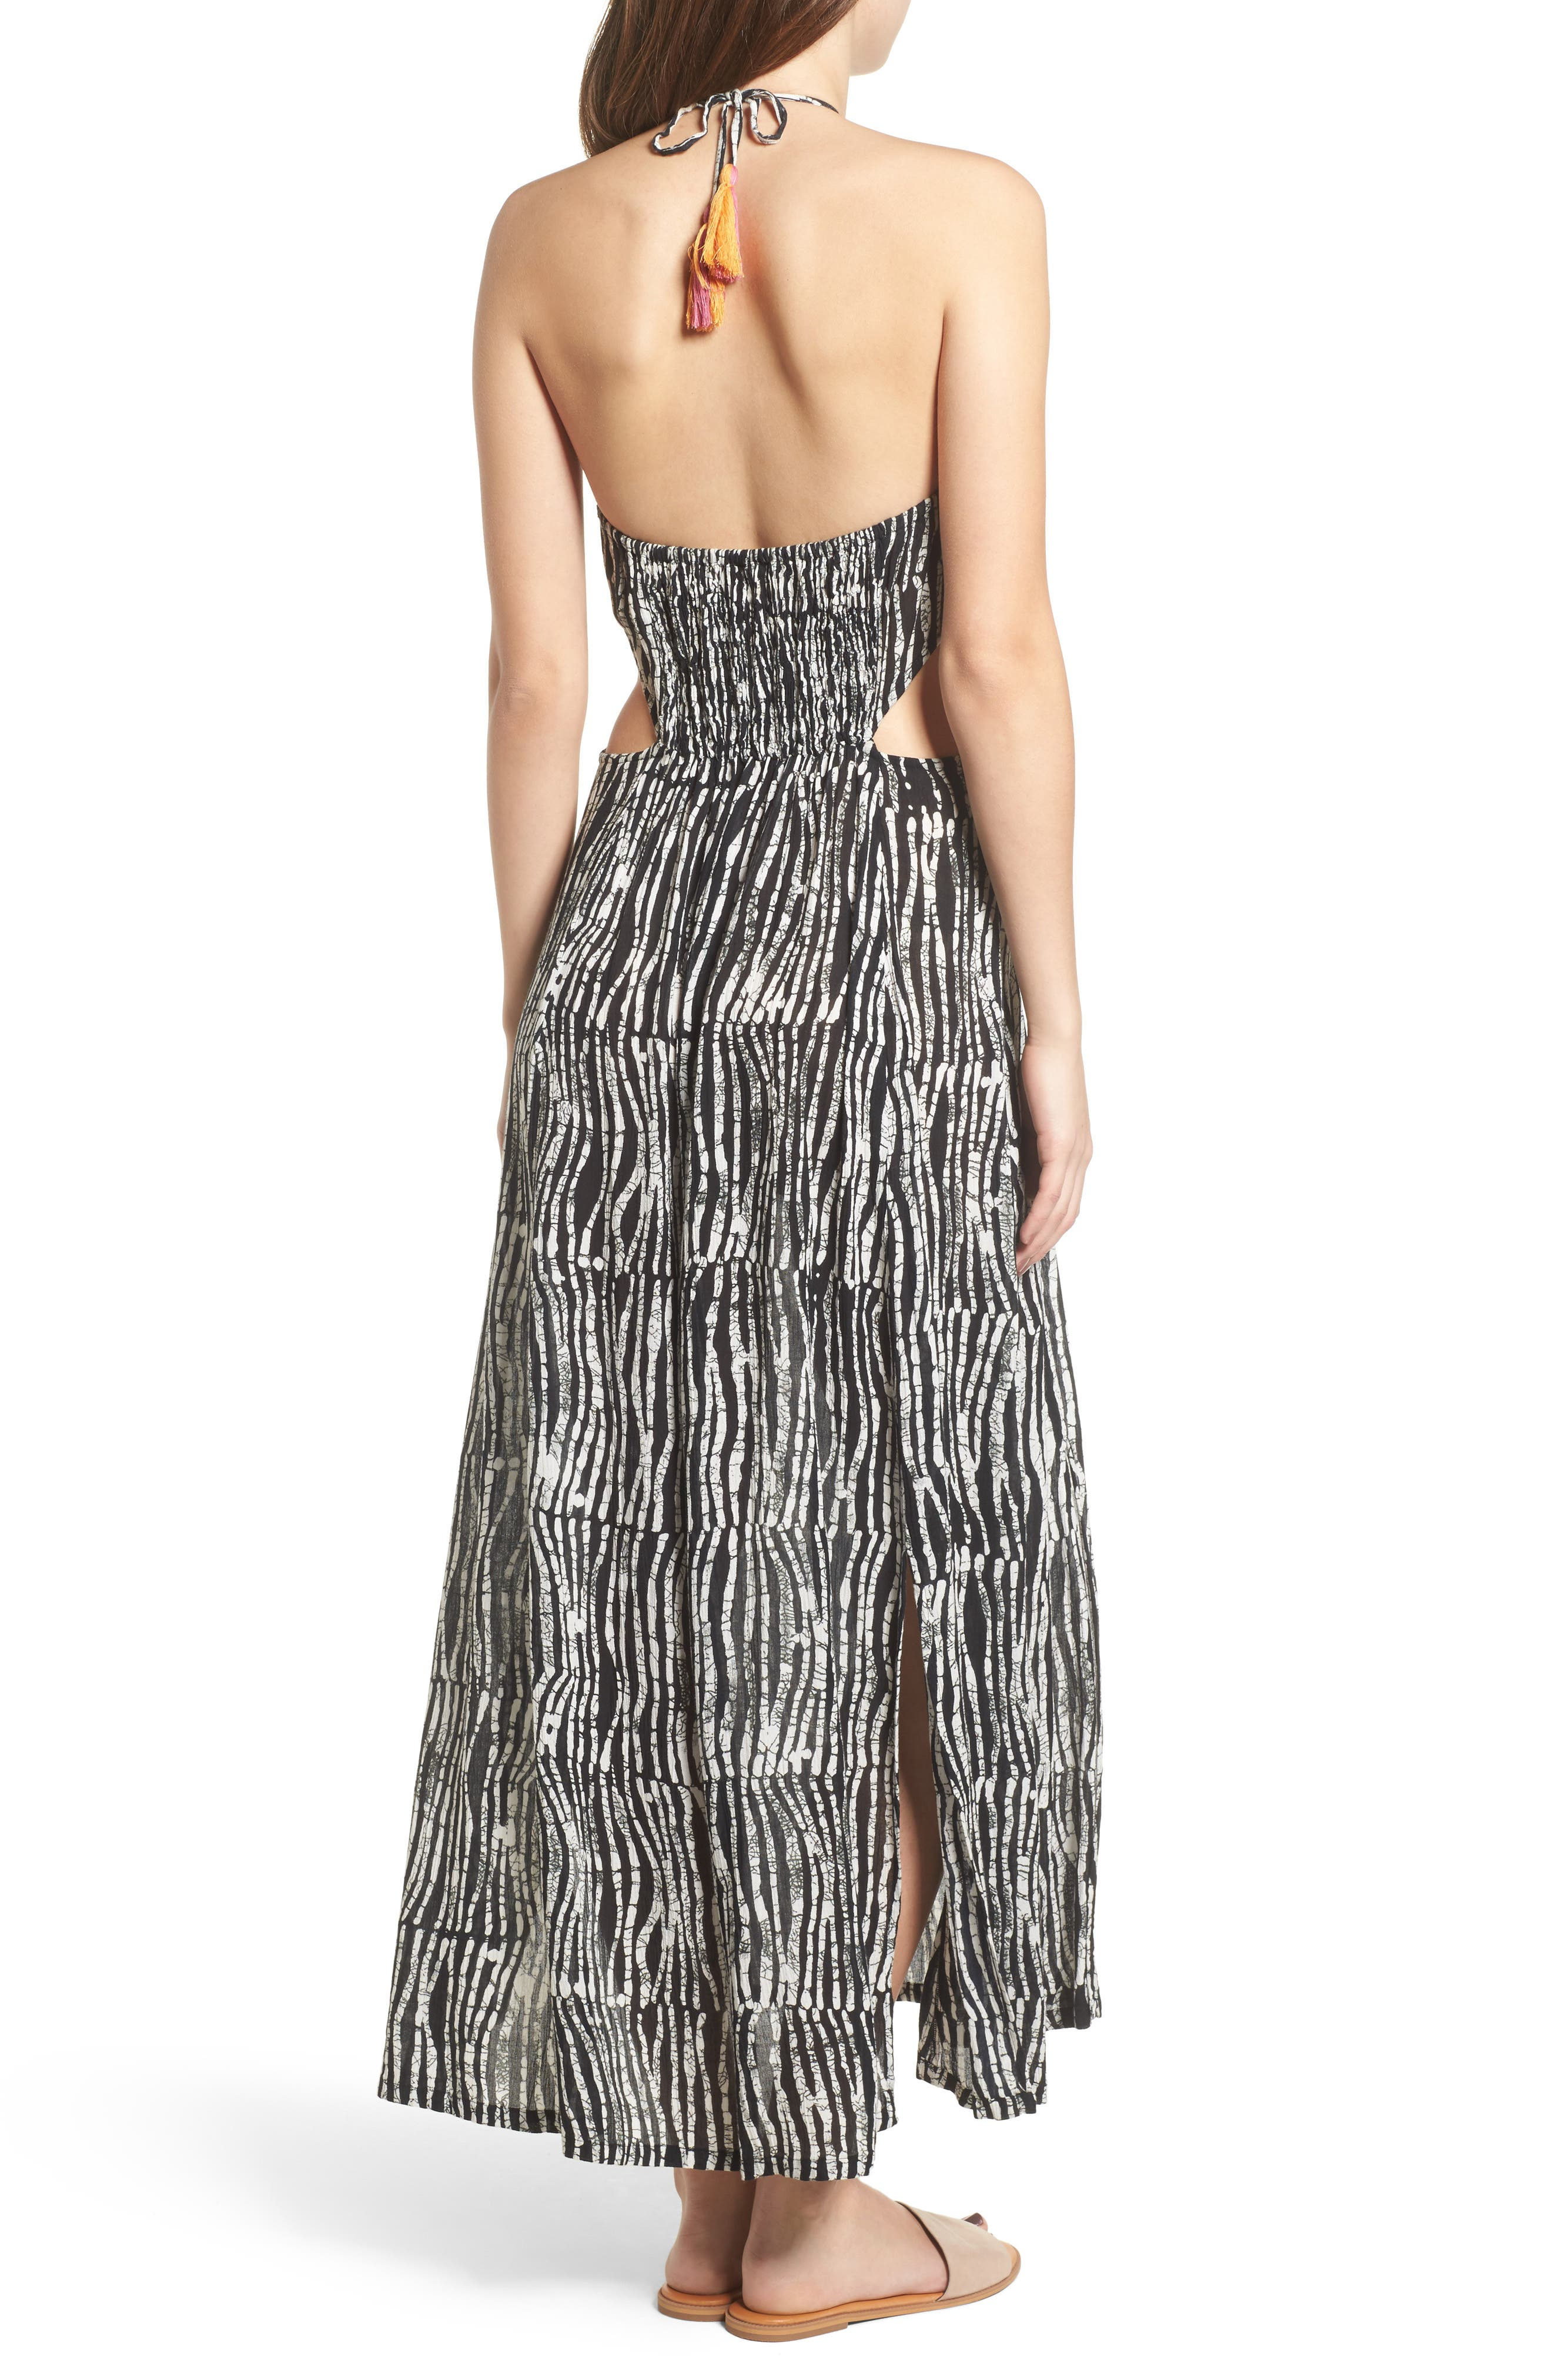 Before Dawn Embroidered Maxi Dress,                             Alternate thumbnail 3, color,                             Black/ White